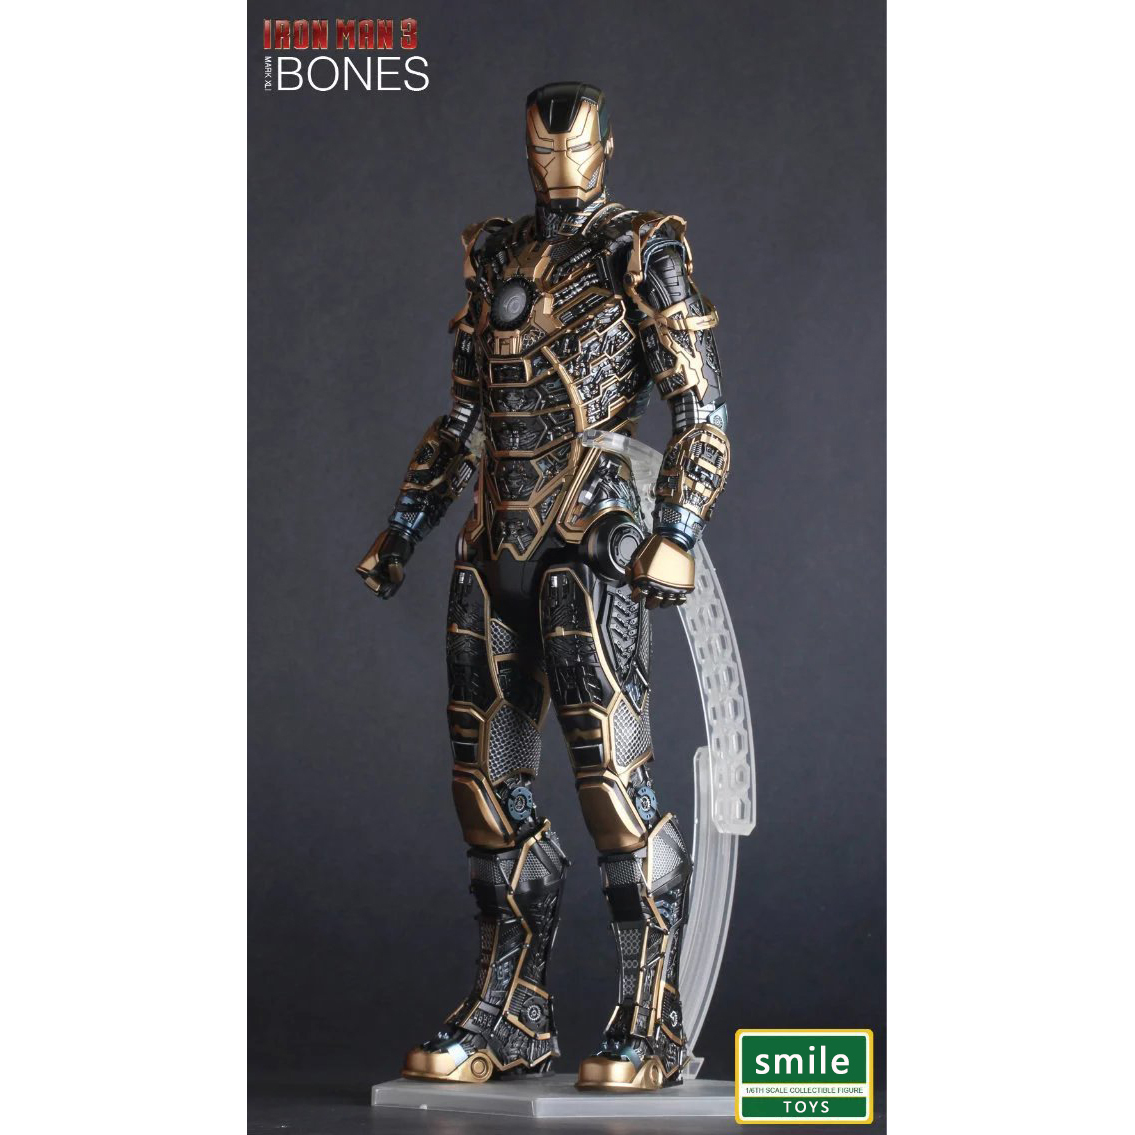 XINDUPLAN Marvel Shield America Anime Avengers Civil War iron Man MK4 BONES Action Figure Toys 1PCS 30cm Collection Model 0348 1 6 scale 30cm the avengers captain america civil war iron man mark xlv mk 45 resin starue action figure collectible model toy